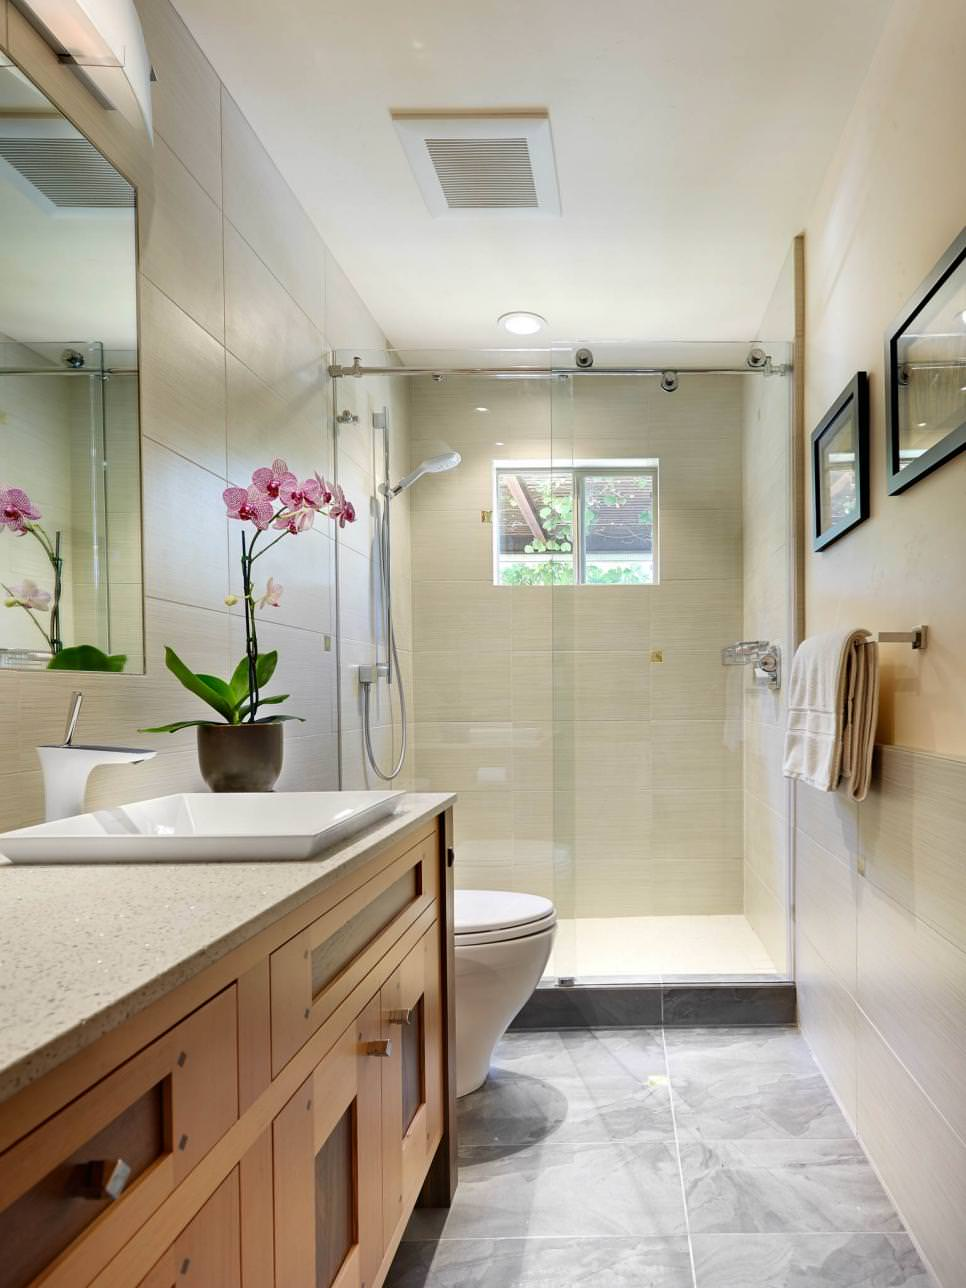 Bathroom Tile Ideas Craftsman Style : Narrow bathroom designs decorating ideas design